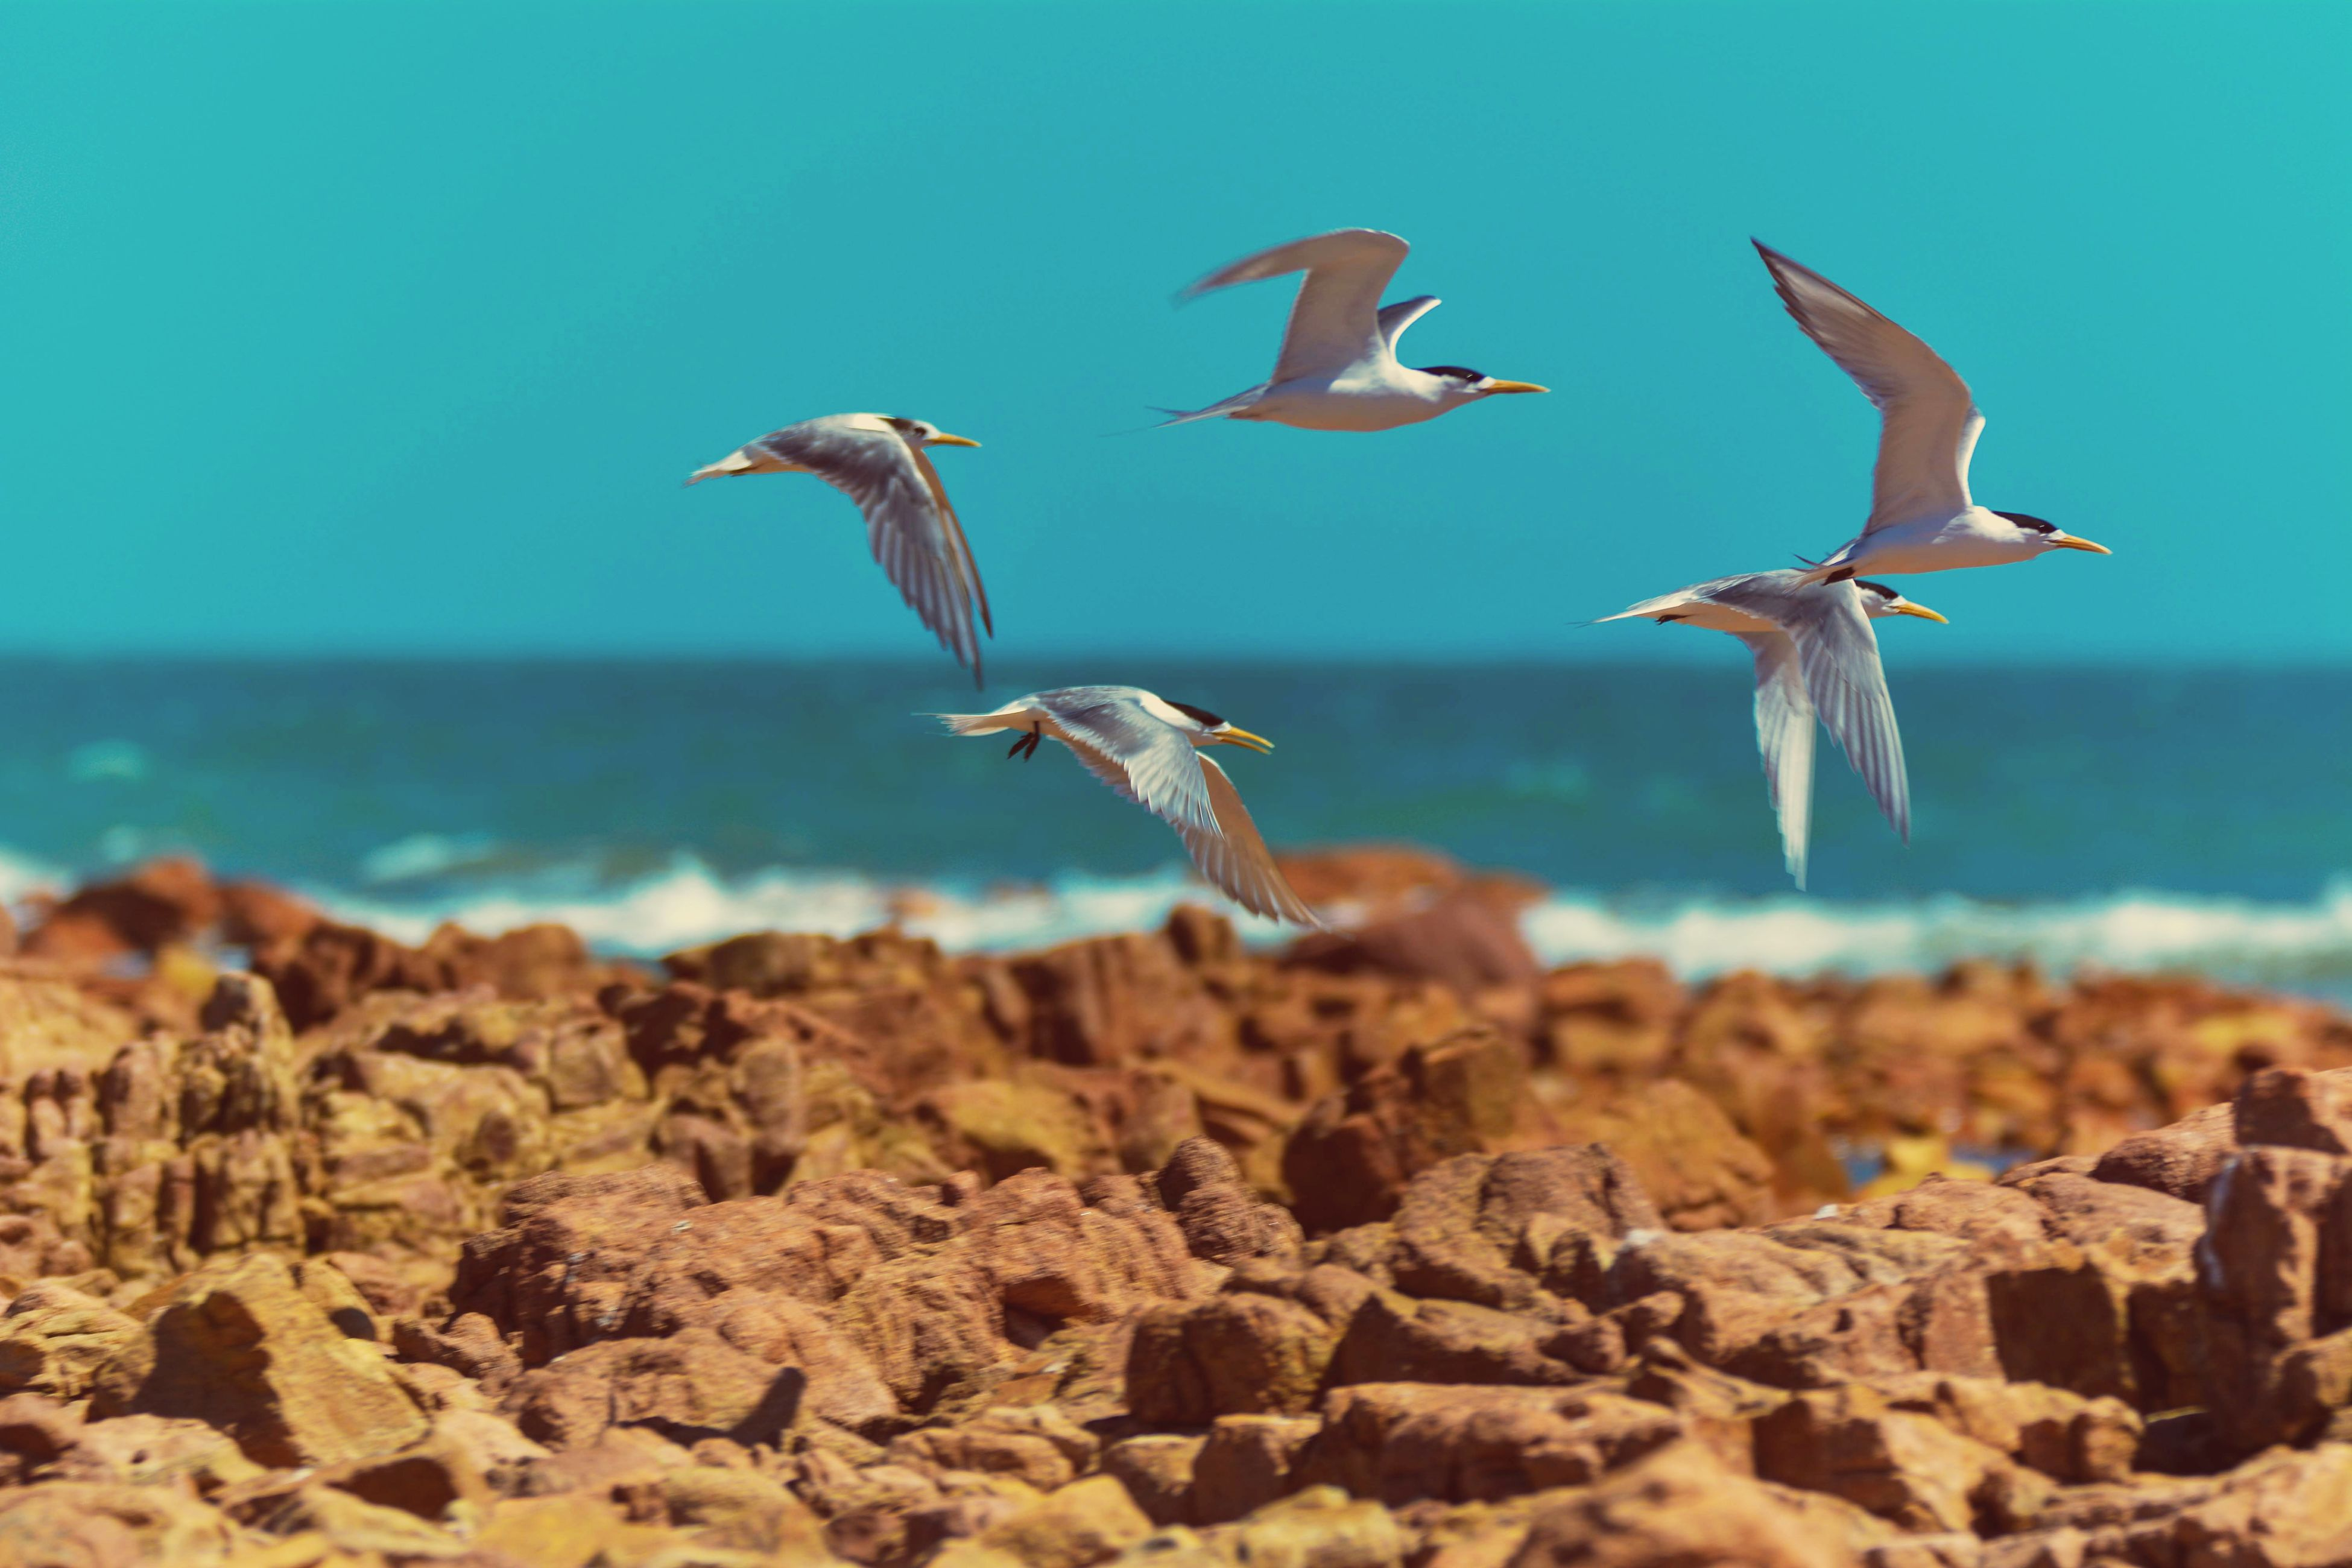 animals in the wild, bird, flying, sea, animal themes, animal wildlife, beach, day, outdoors, no people, large group of animals, water, spread wings, scenics, nature, beauty in nature